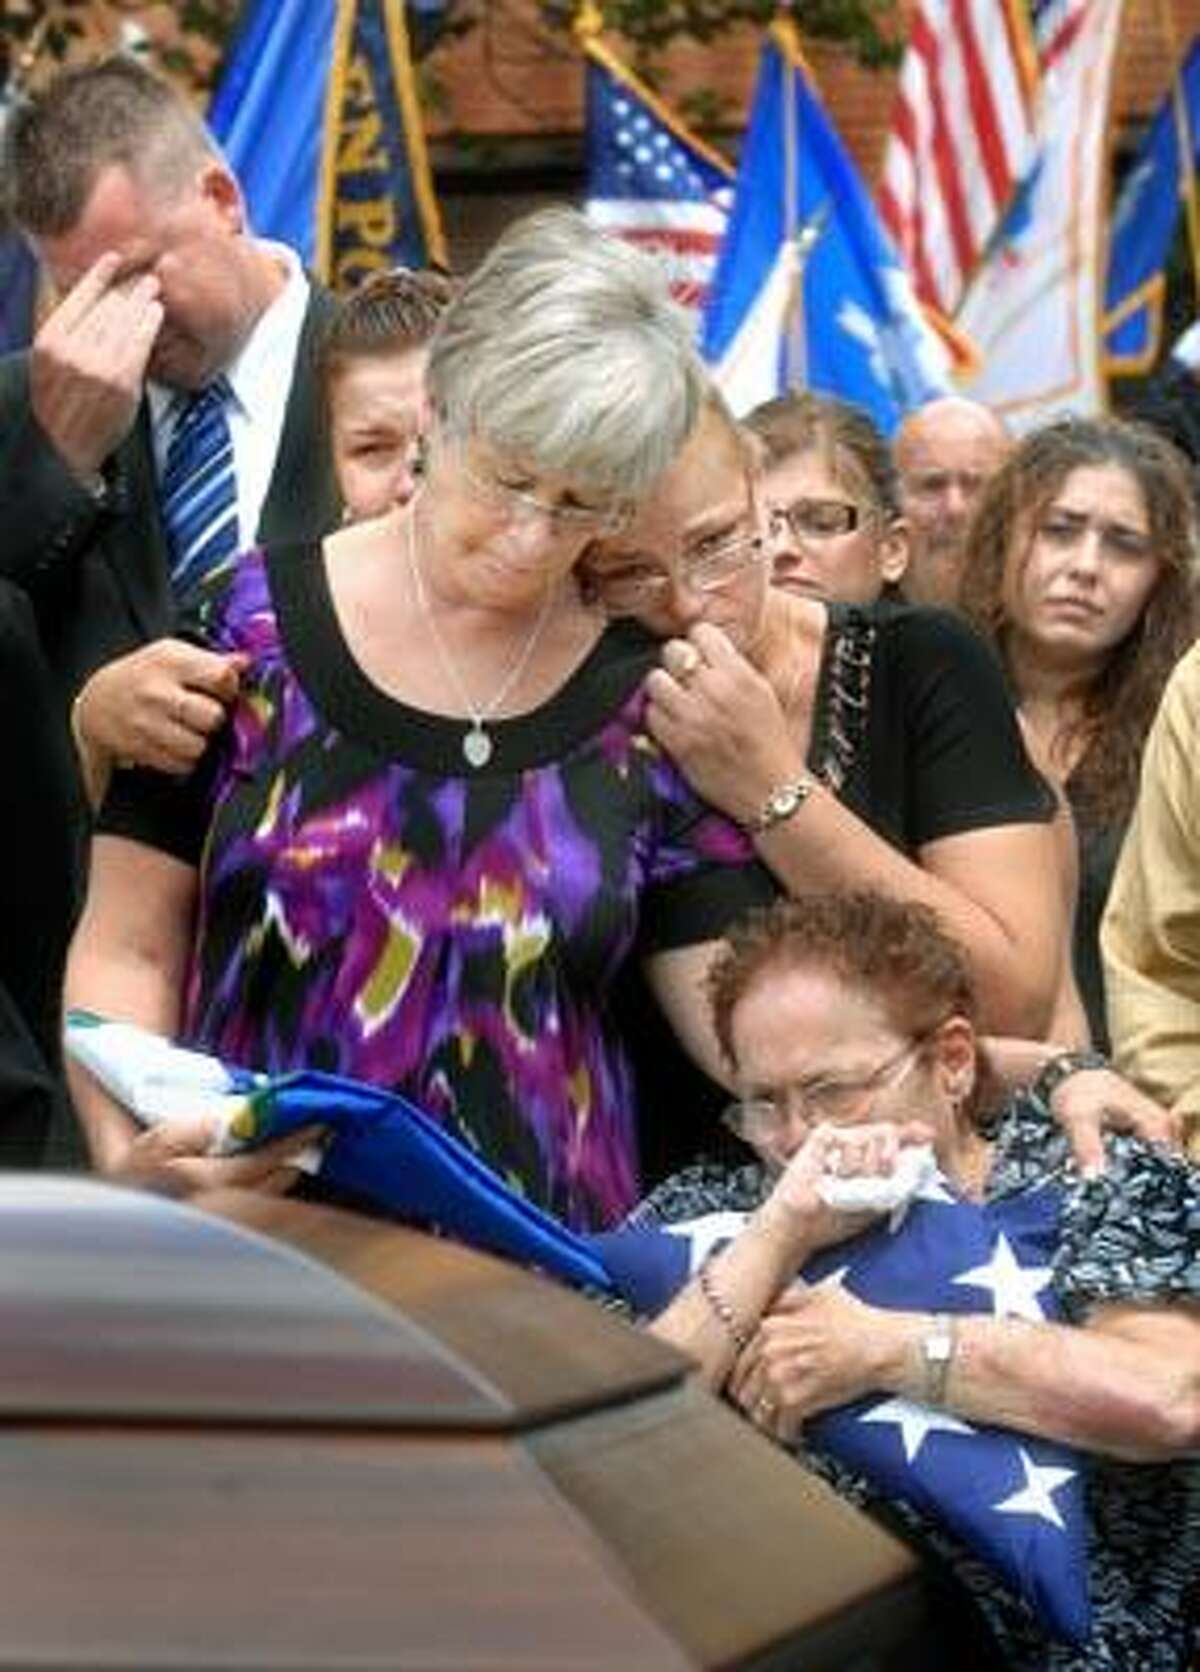 People mourn the loss of Shelton police Sgt. Orville Smith, who died after being hit while he was directing traffic July 3. The service was held Tuesday at Shelton High School. (Melanie Stengel/Register)